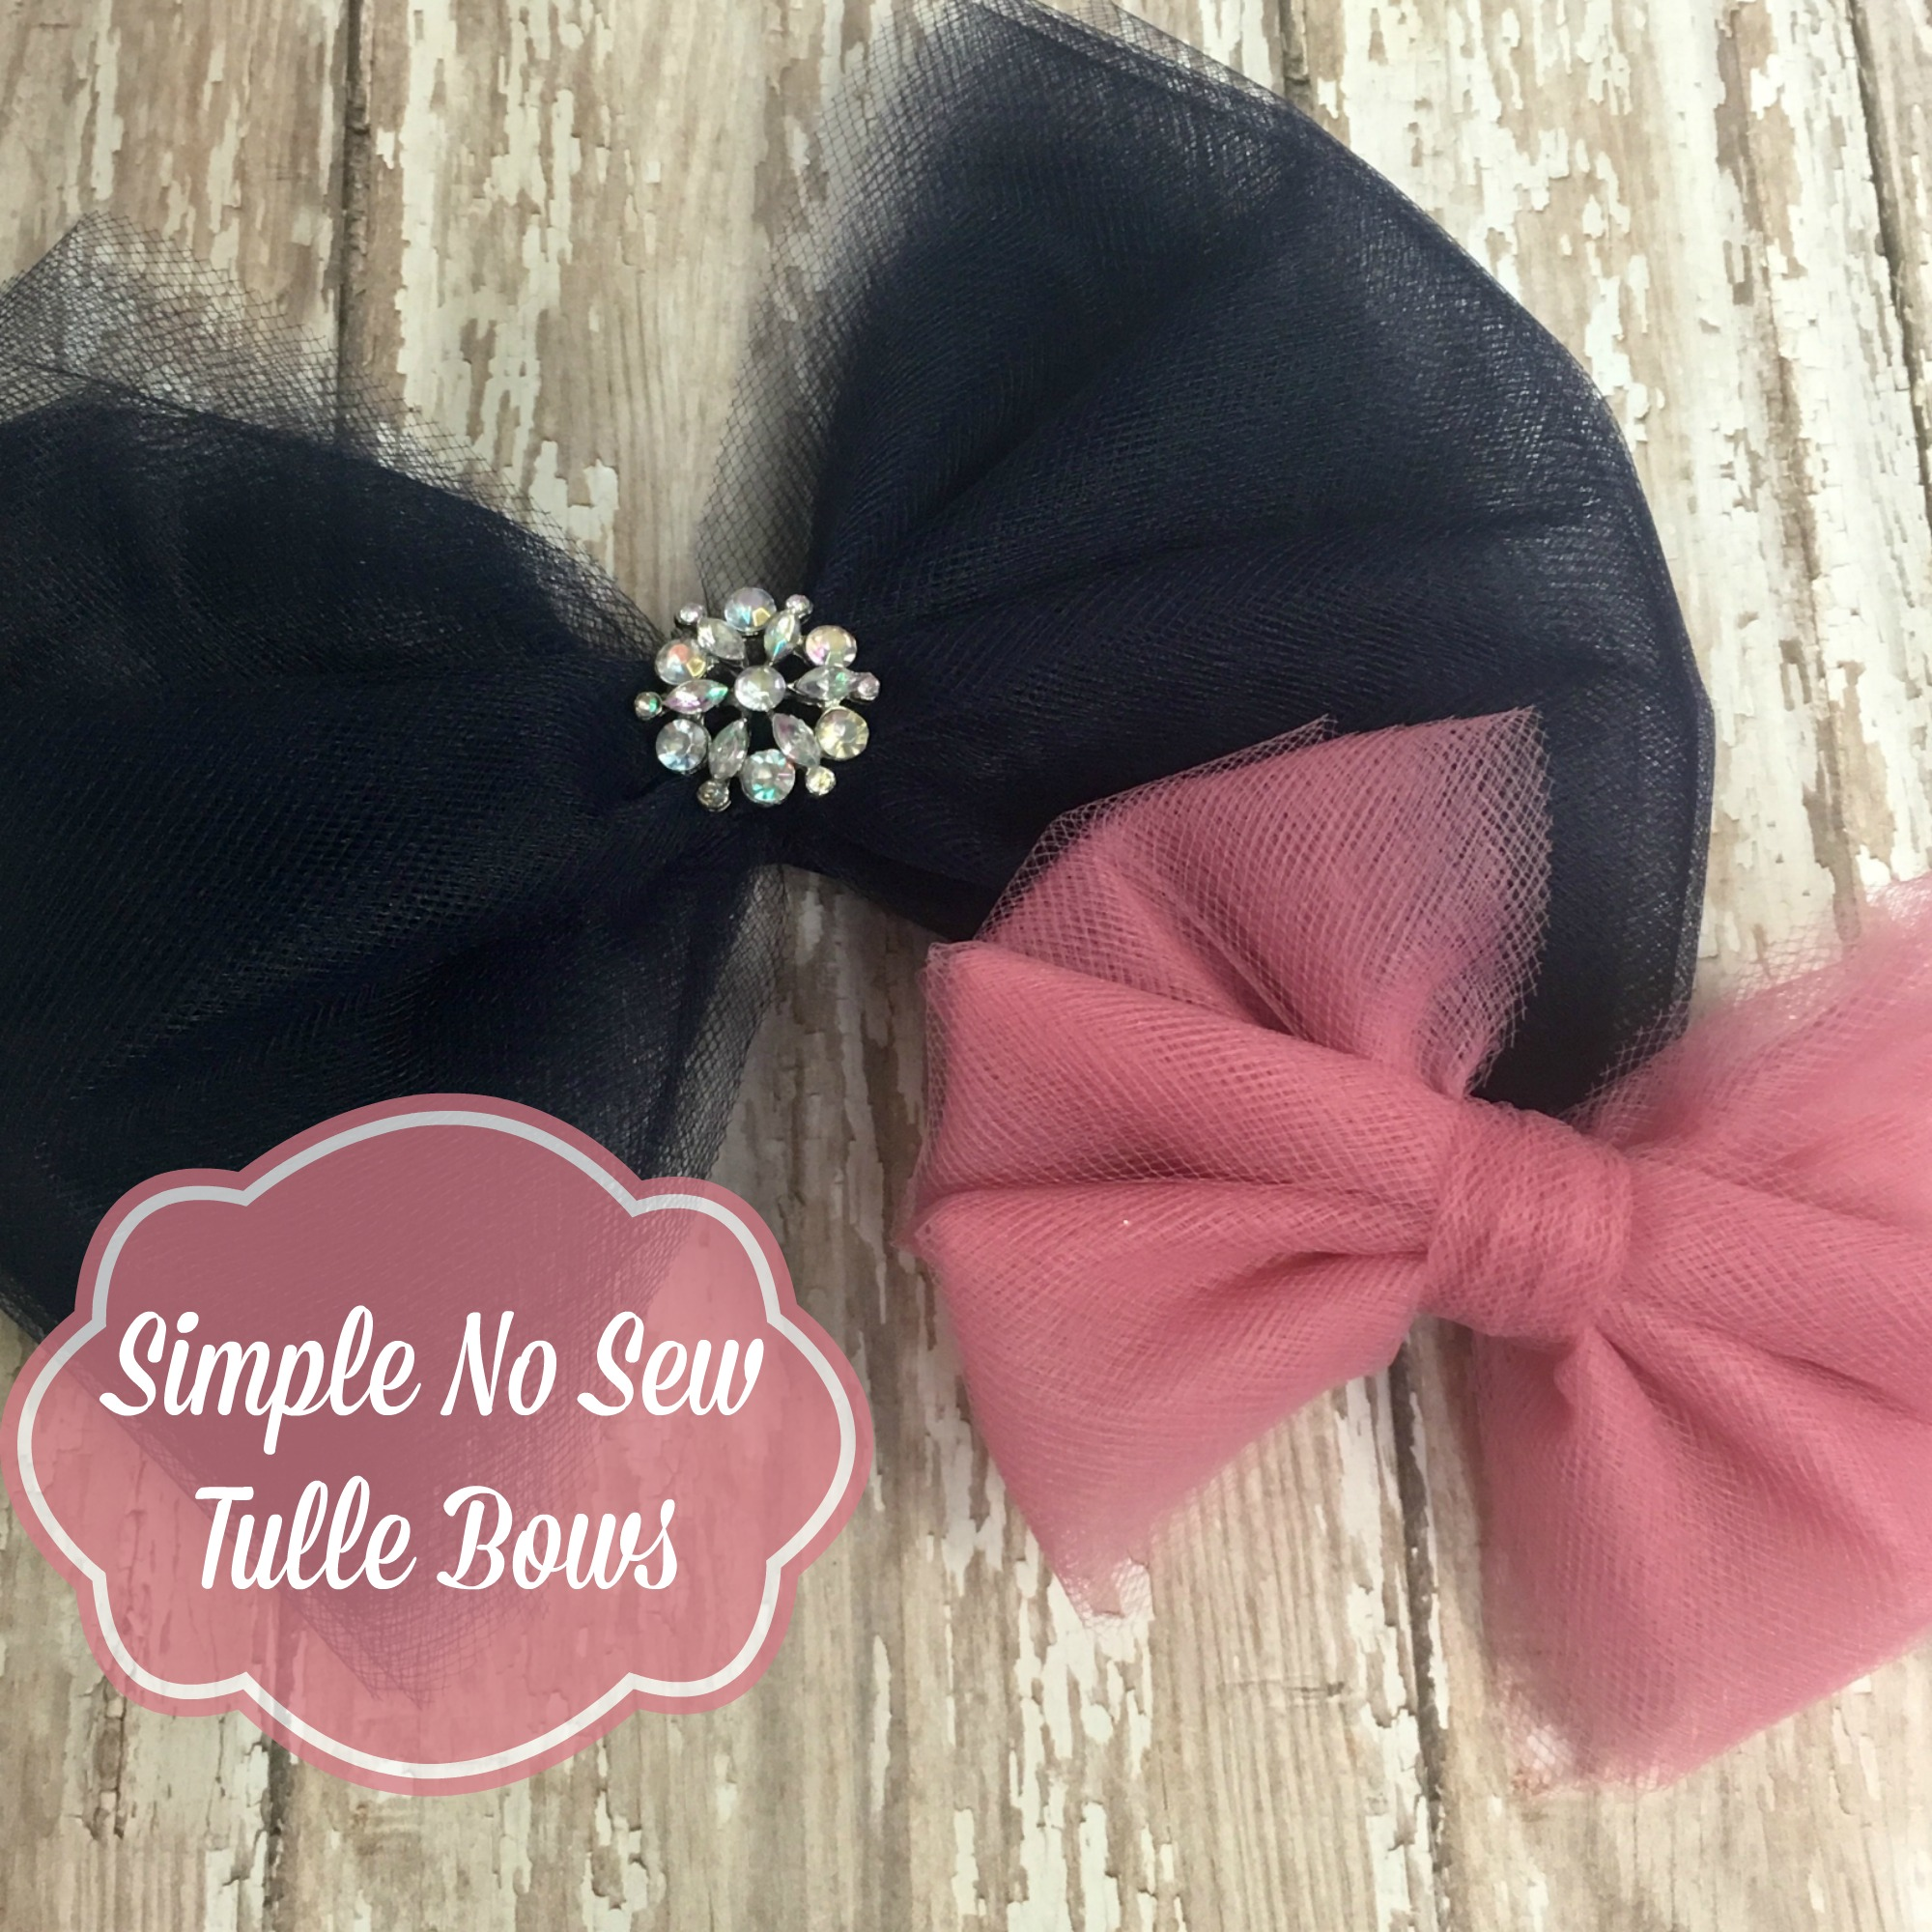 Tulle Hair Bows | The Hair Bow Company